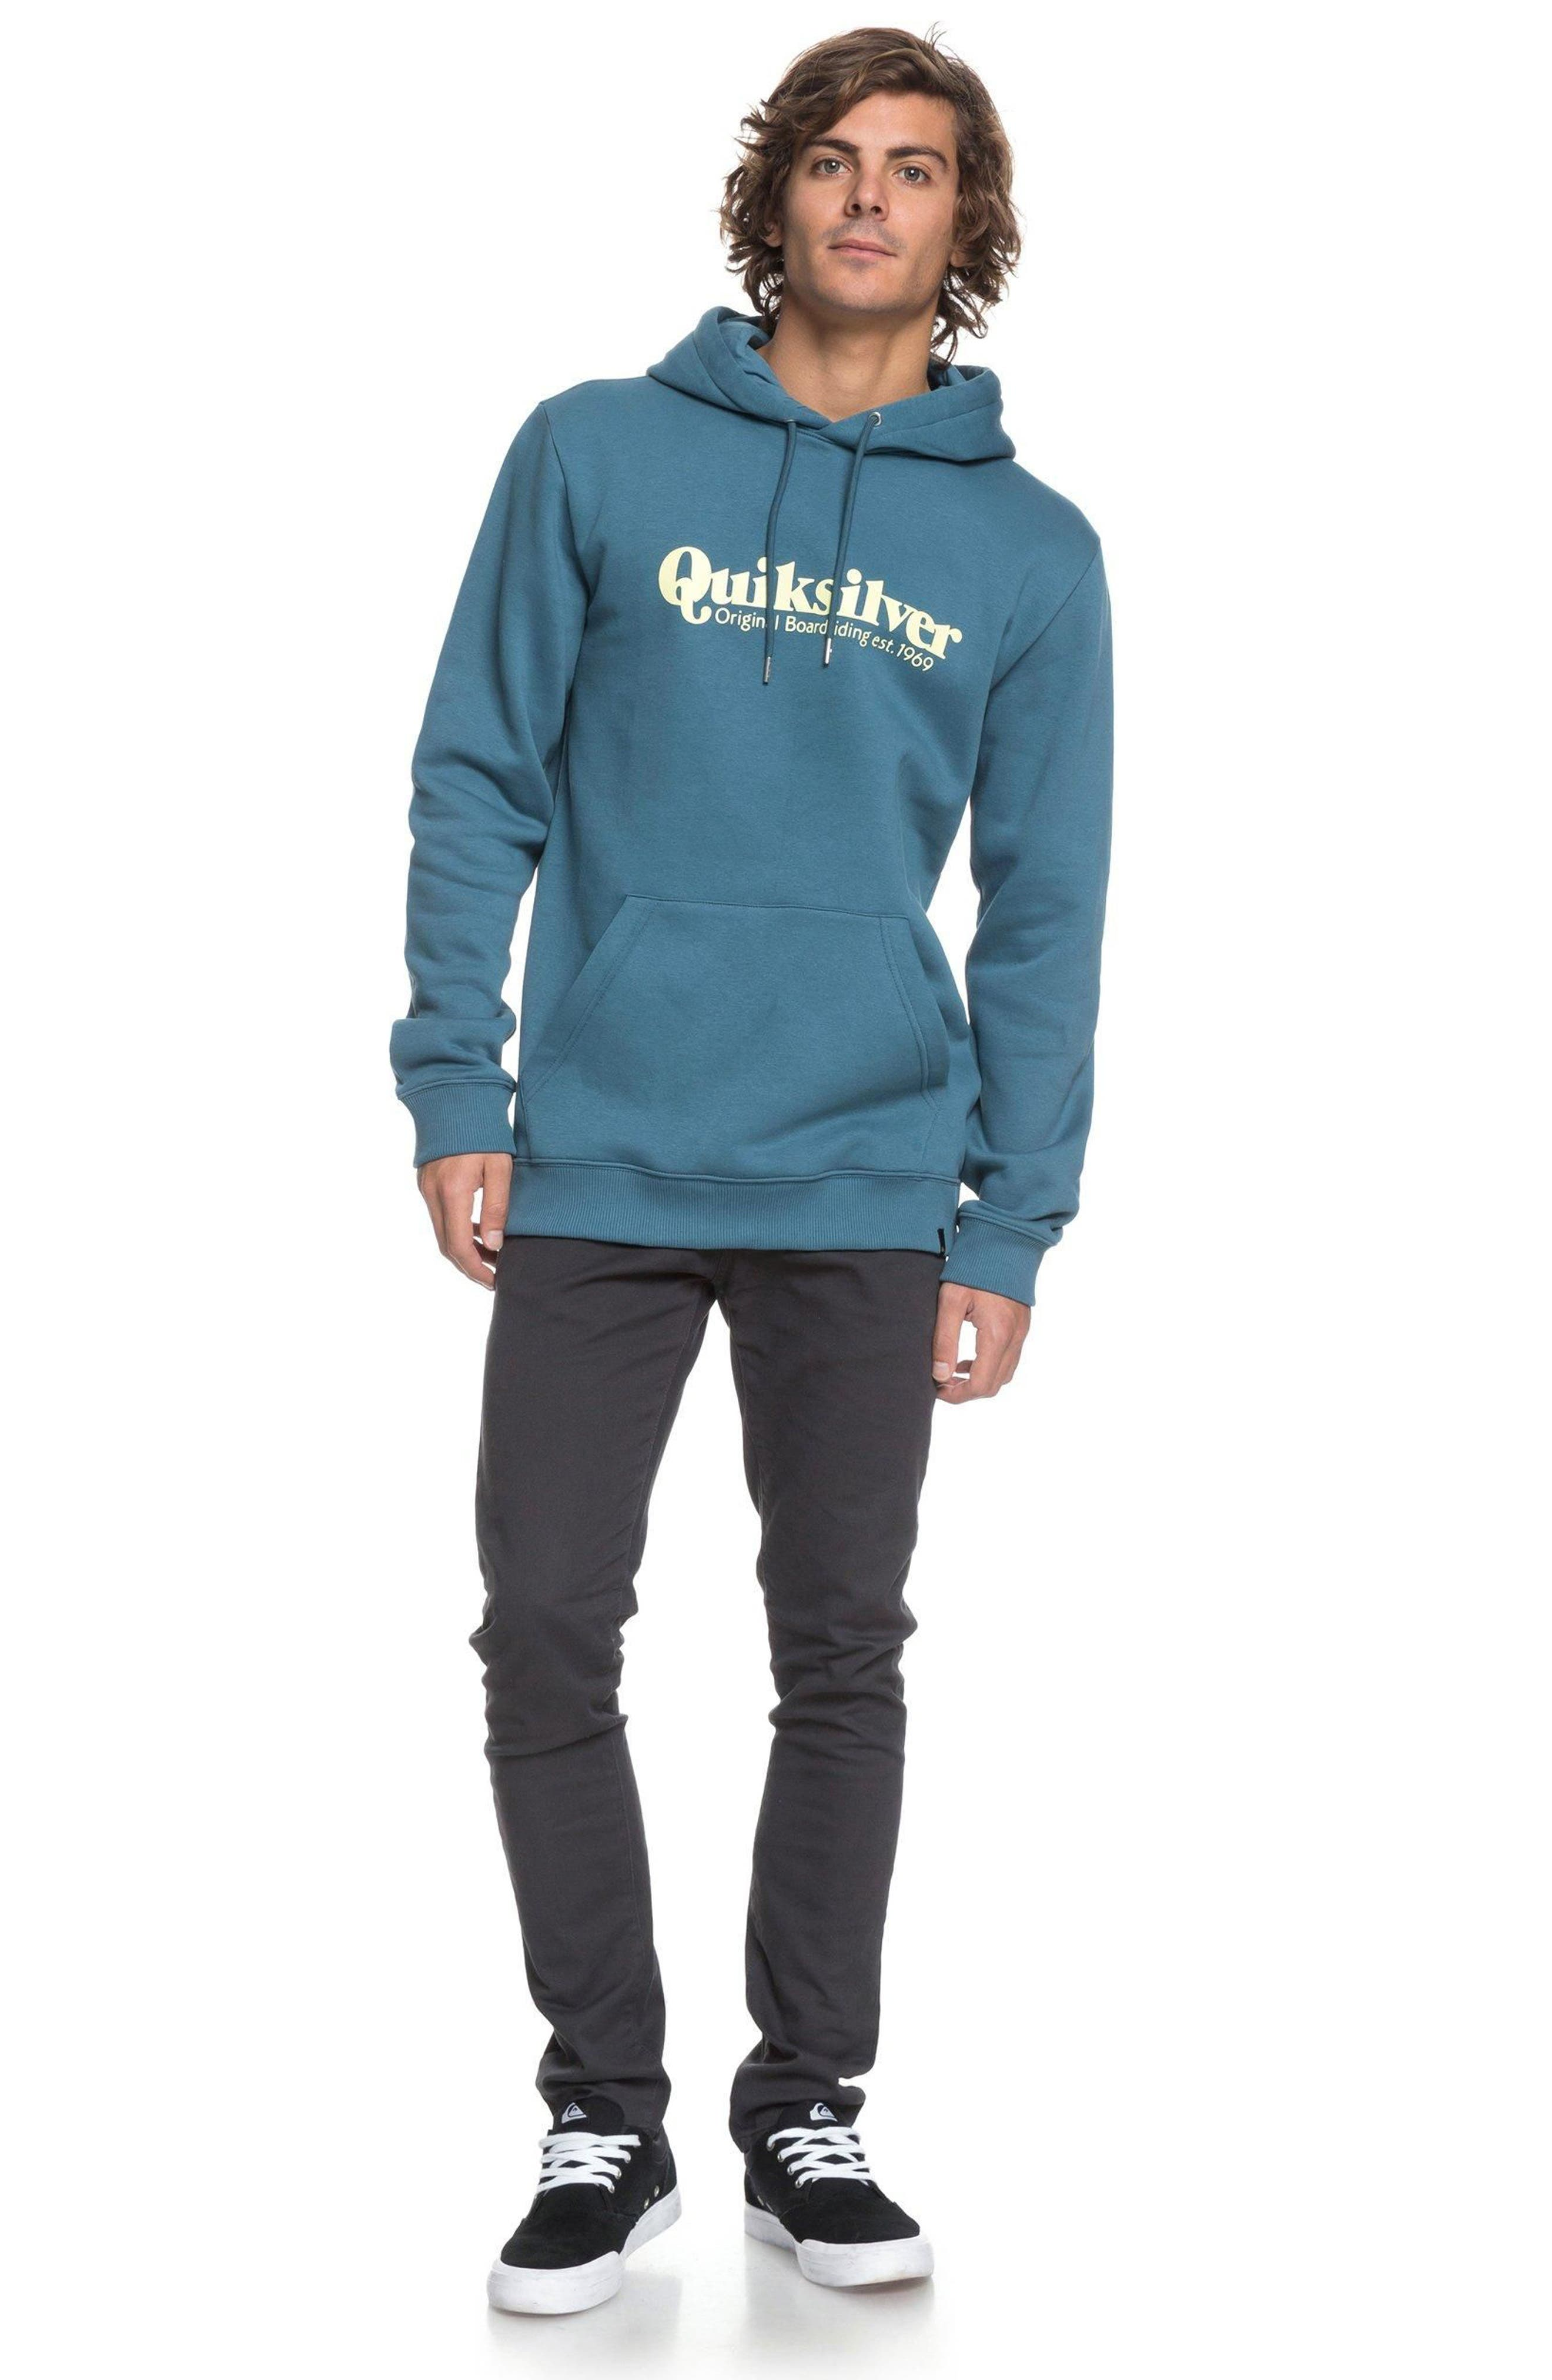 Twin Fin Mates Hoodie,                             Alternate thumbnail 3, color,                             Real Teal